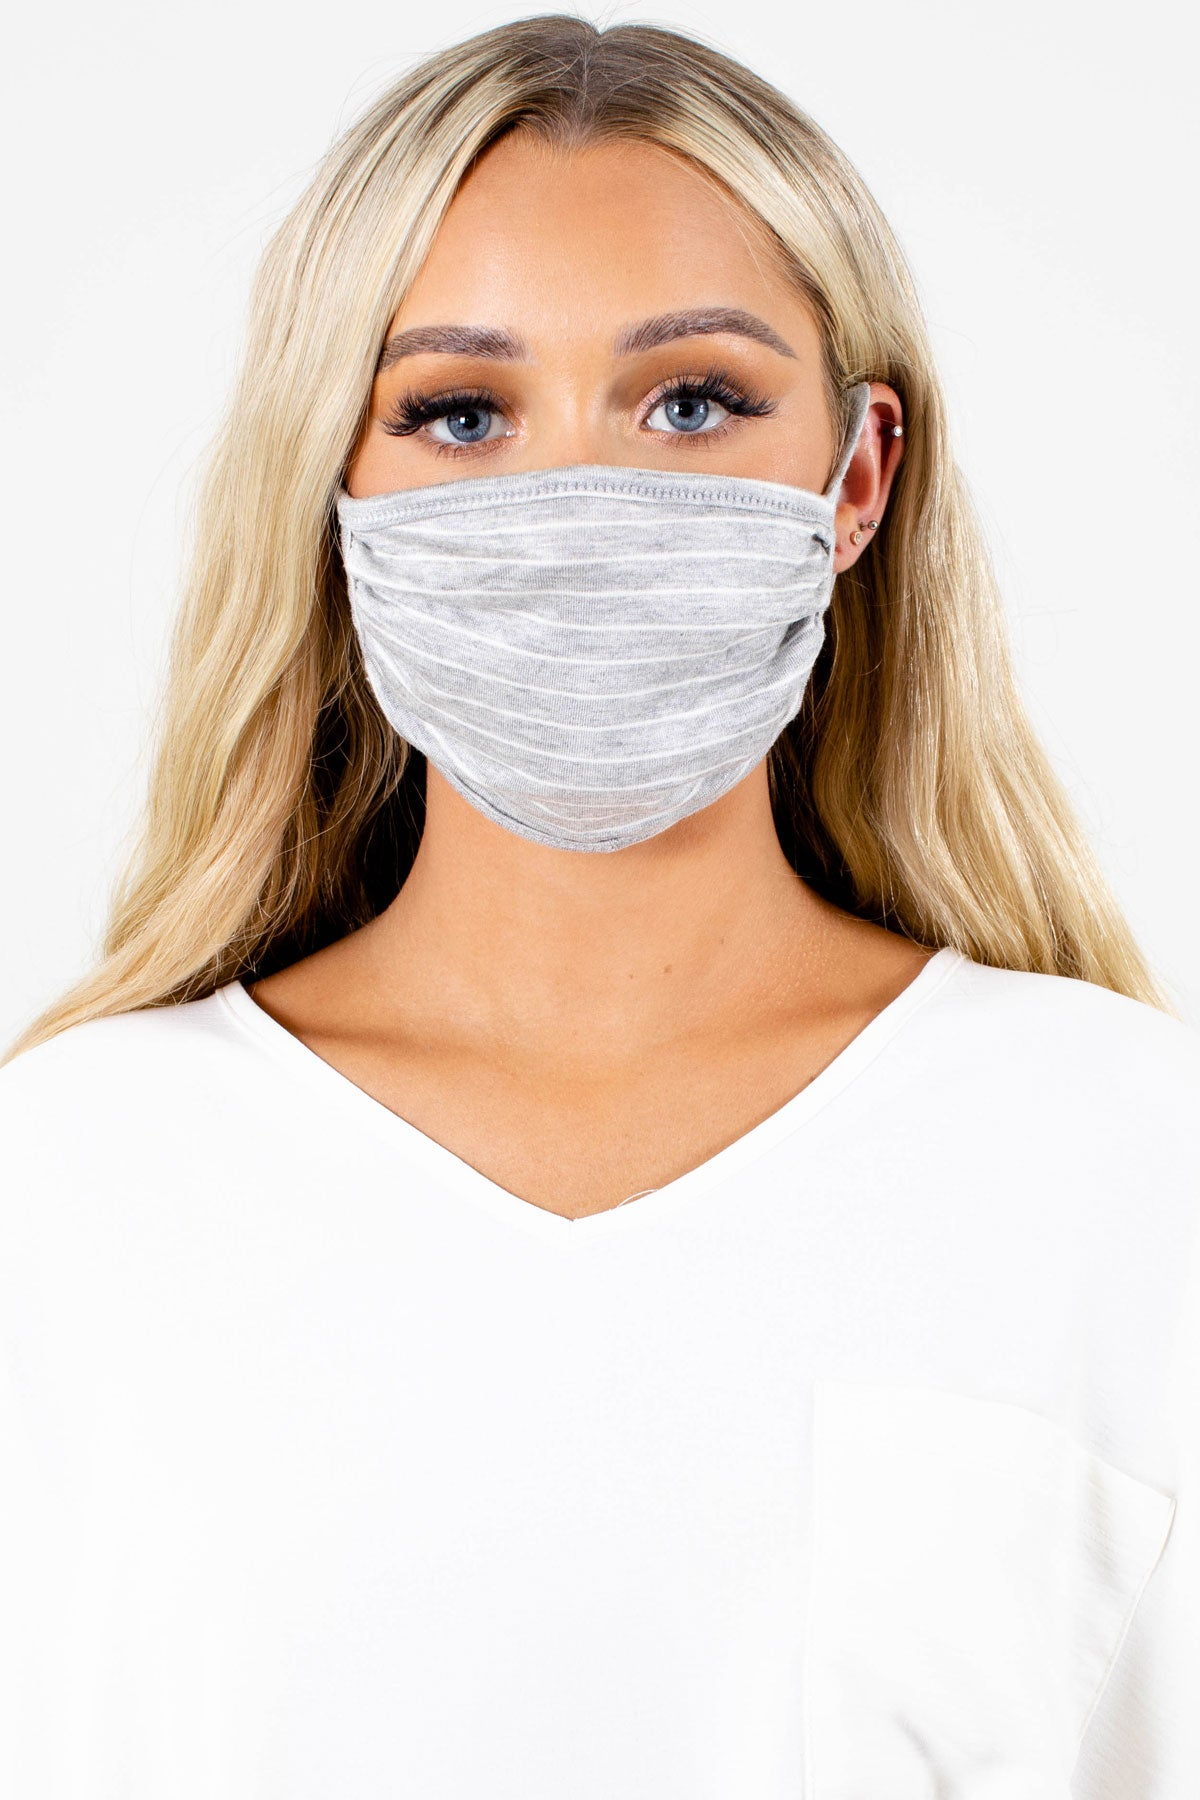 Gray and White Striped Boutique Face Masks for Women